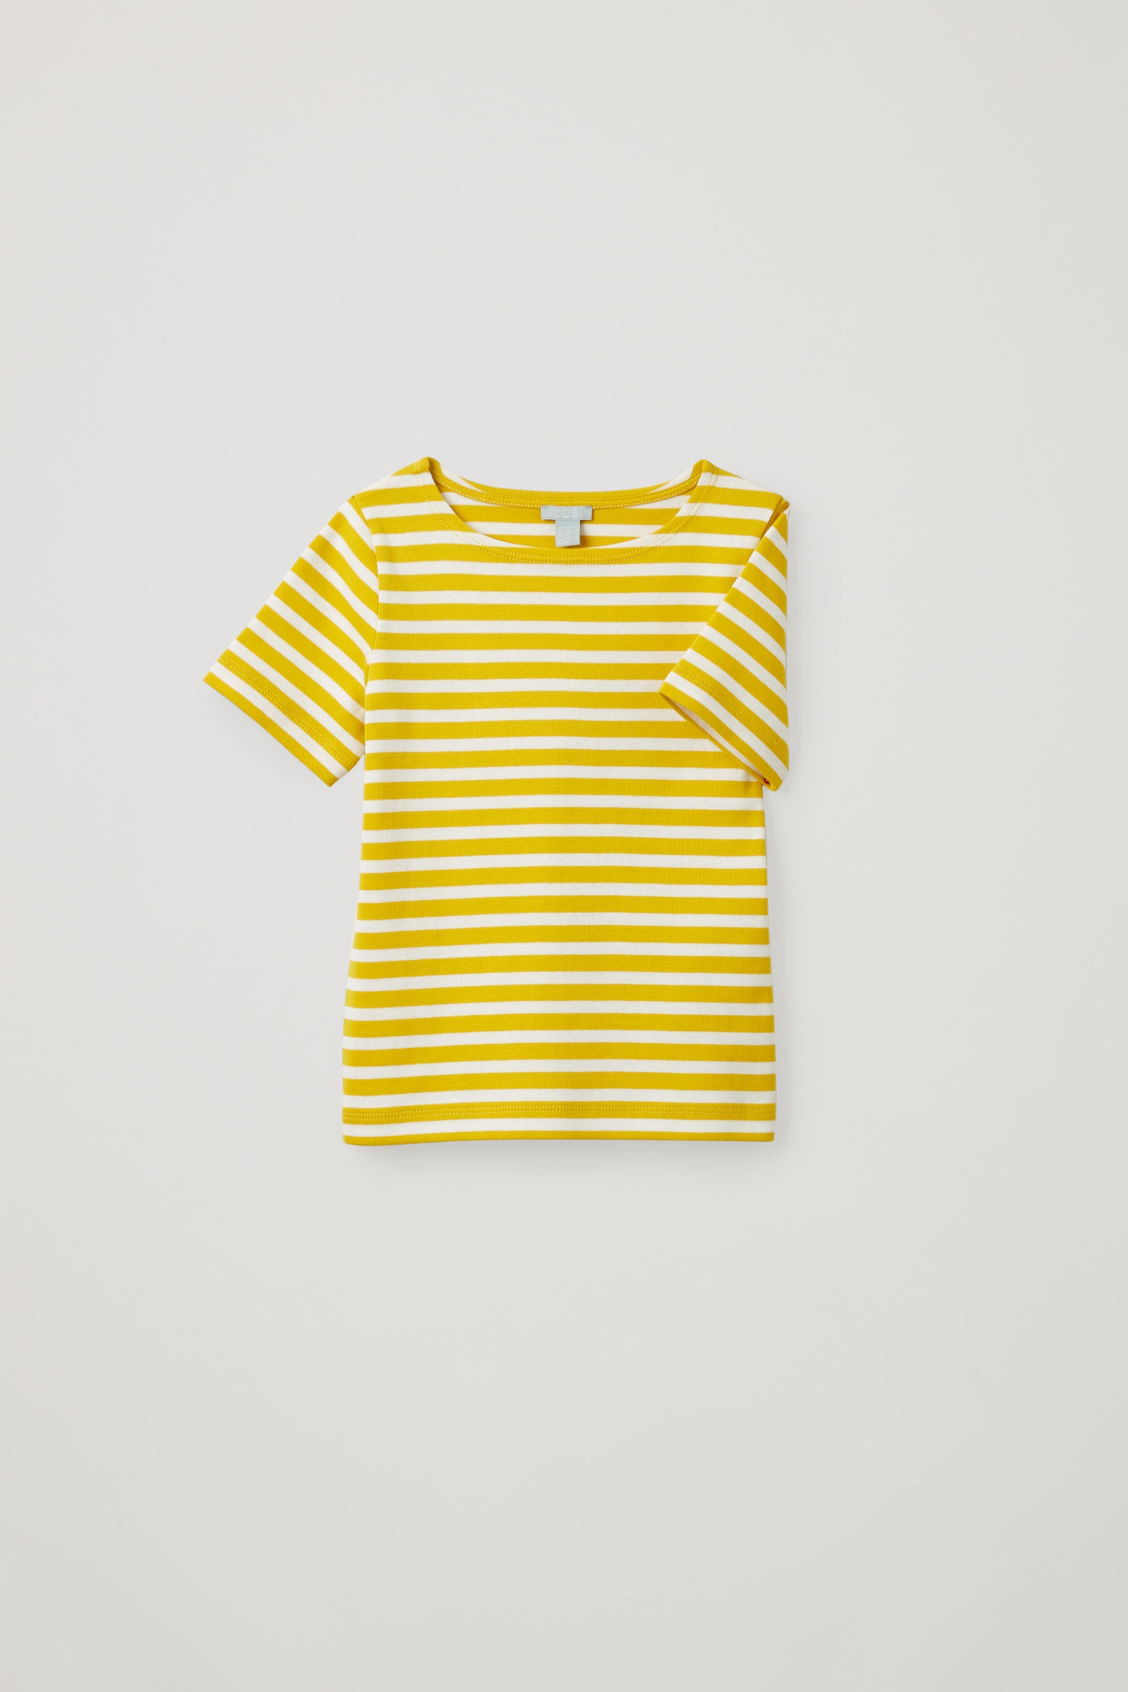 Detailed image of Cos striped short-sleeved t-shirt in yellow